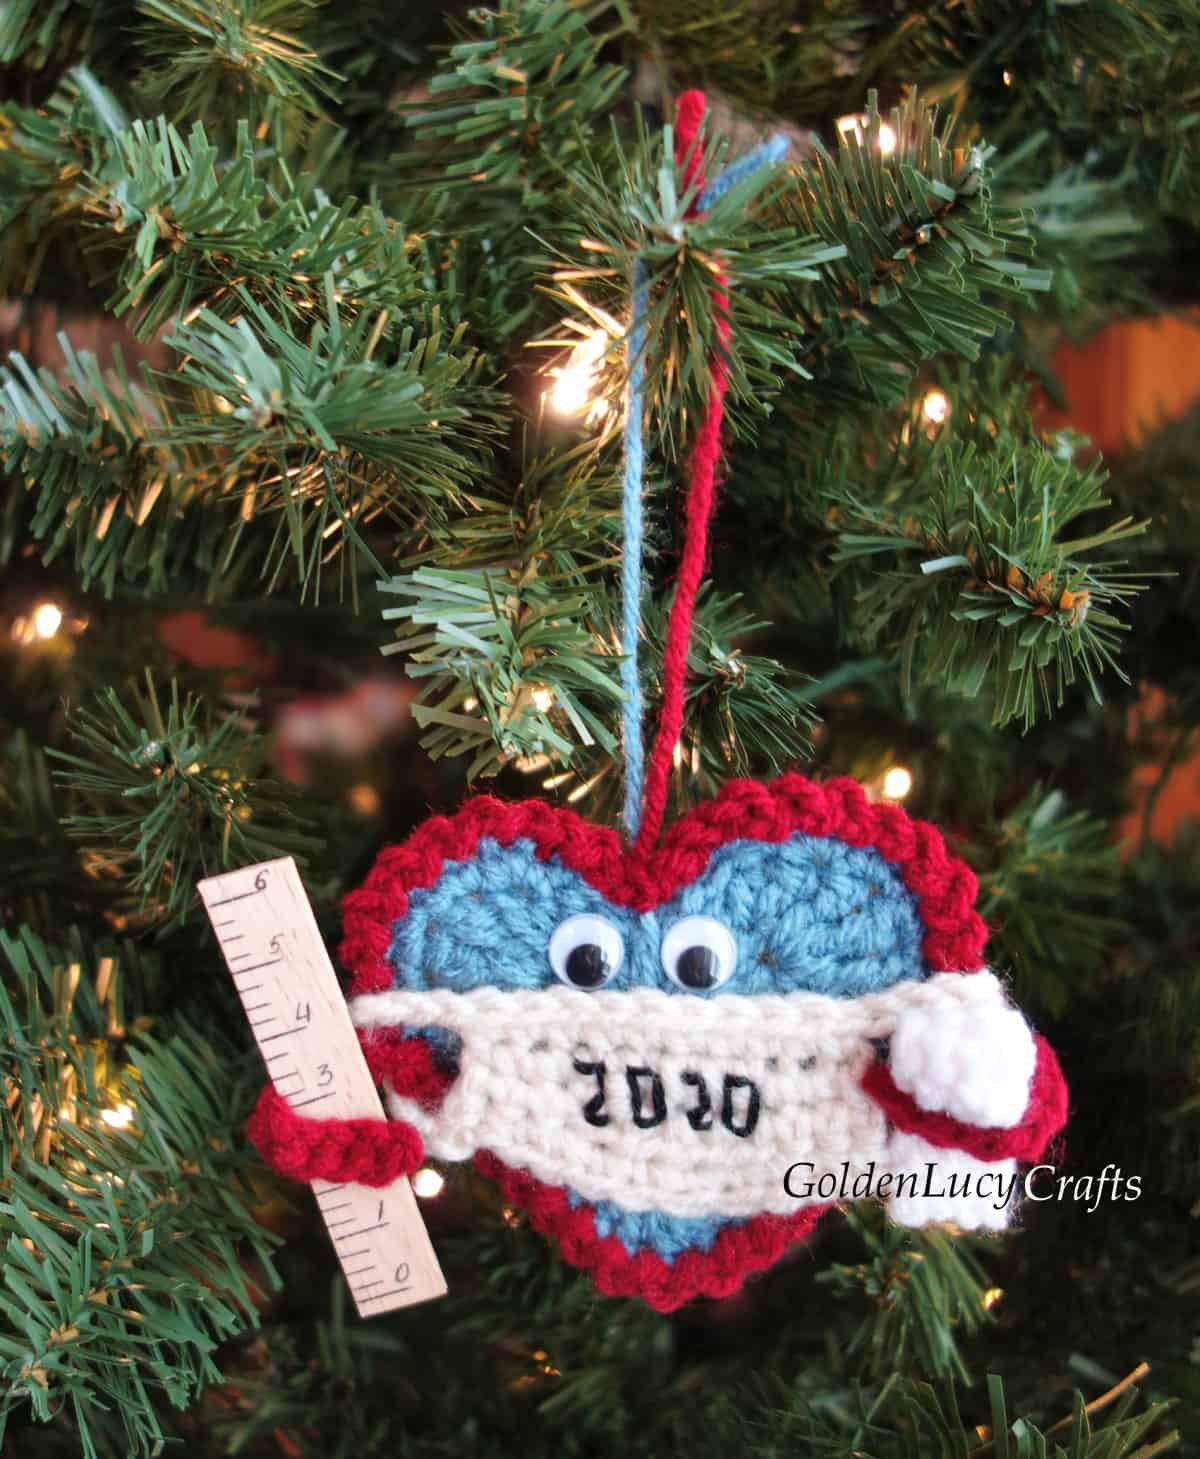 Crochet Christmas 2020 ornament hanging on the Christmas tree. The ornament is a Heart wearing a mask and holding a ruler in one arm and a toilet paper roll in the other.